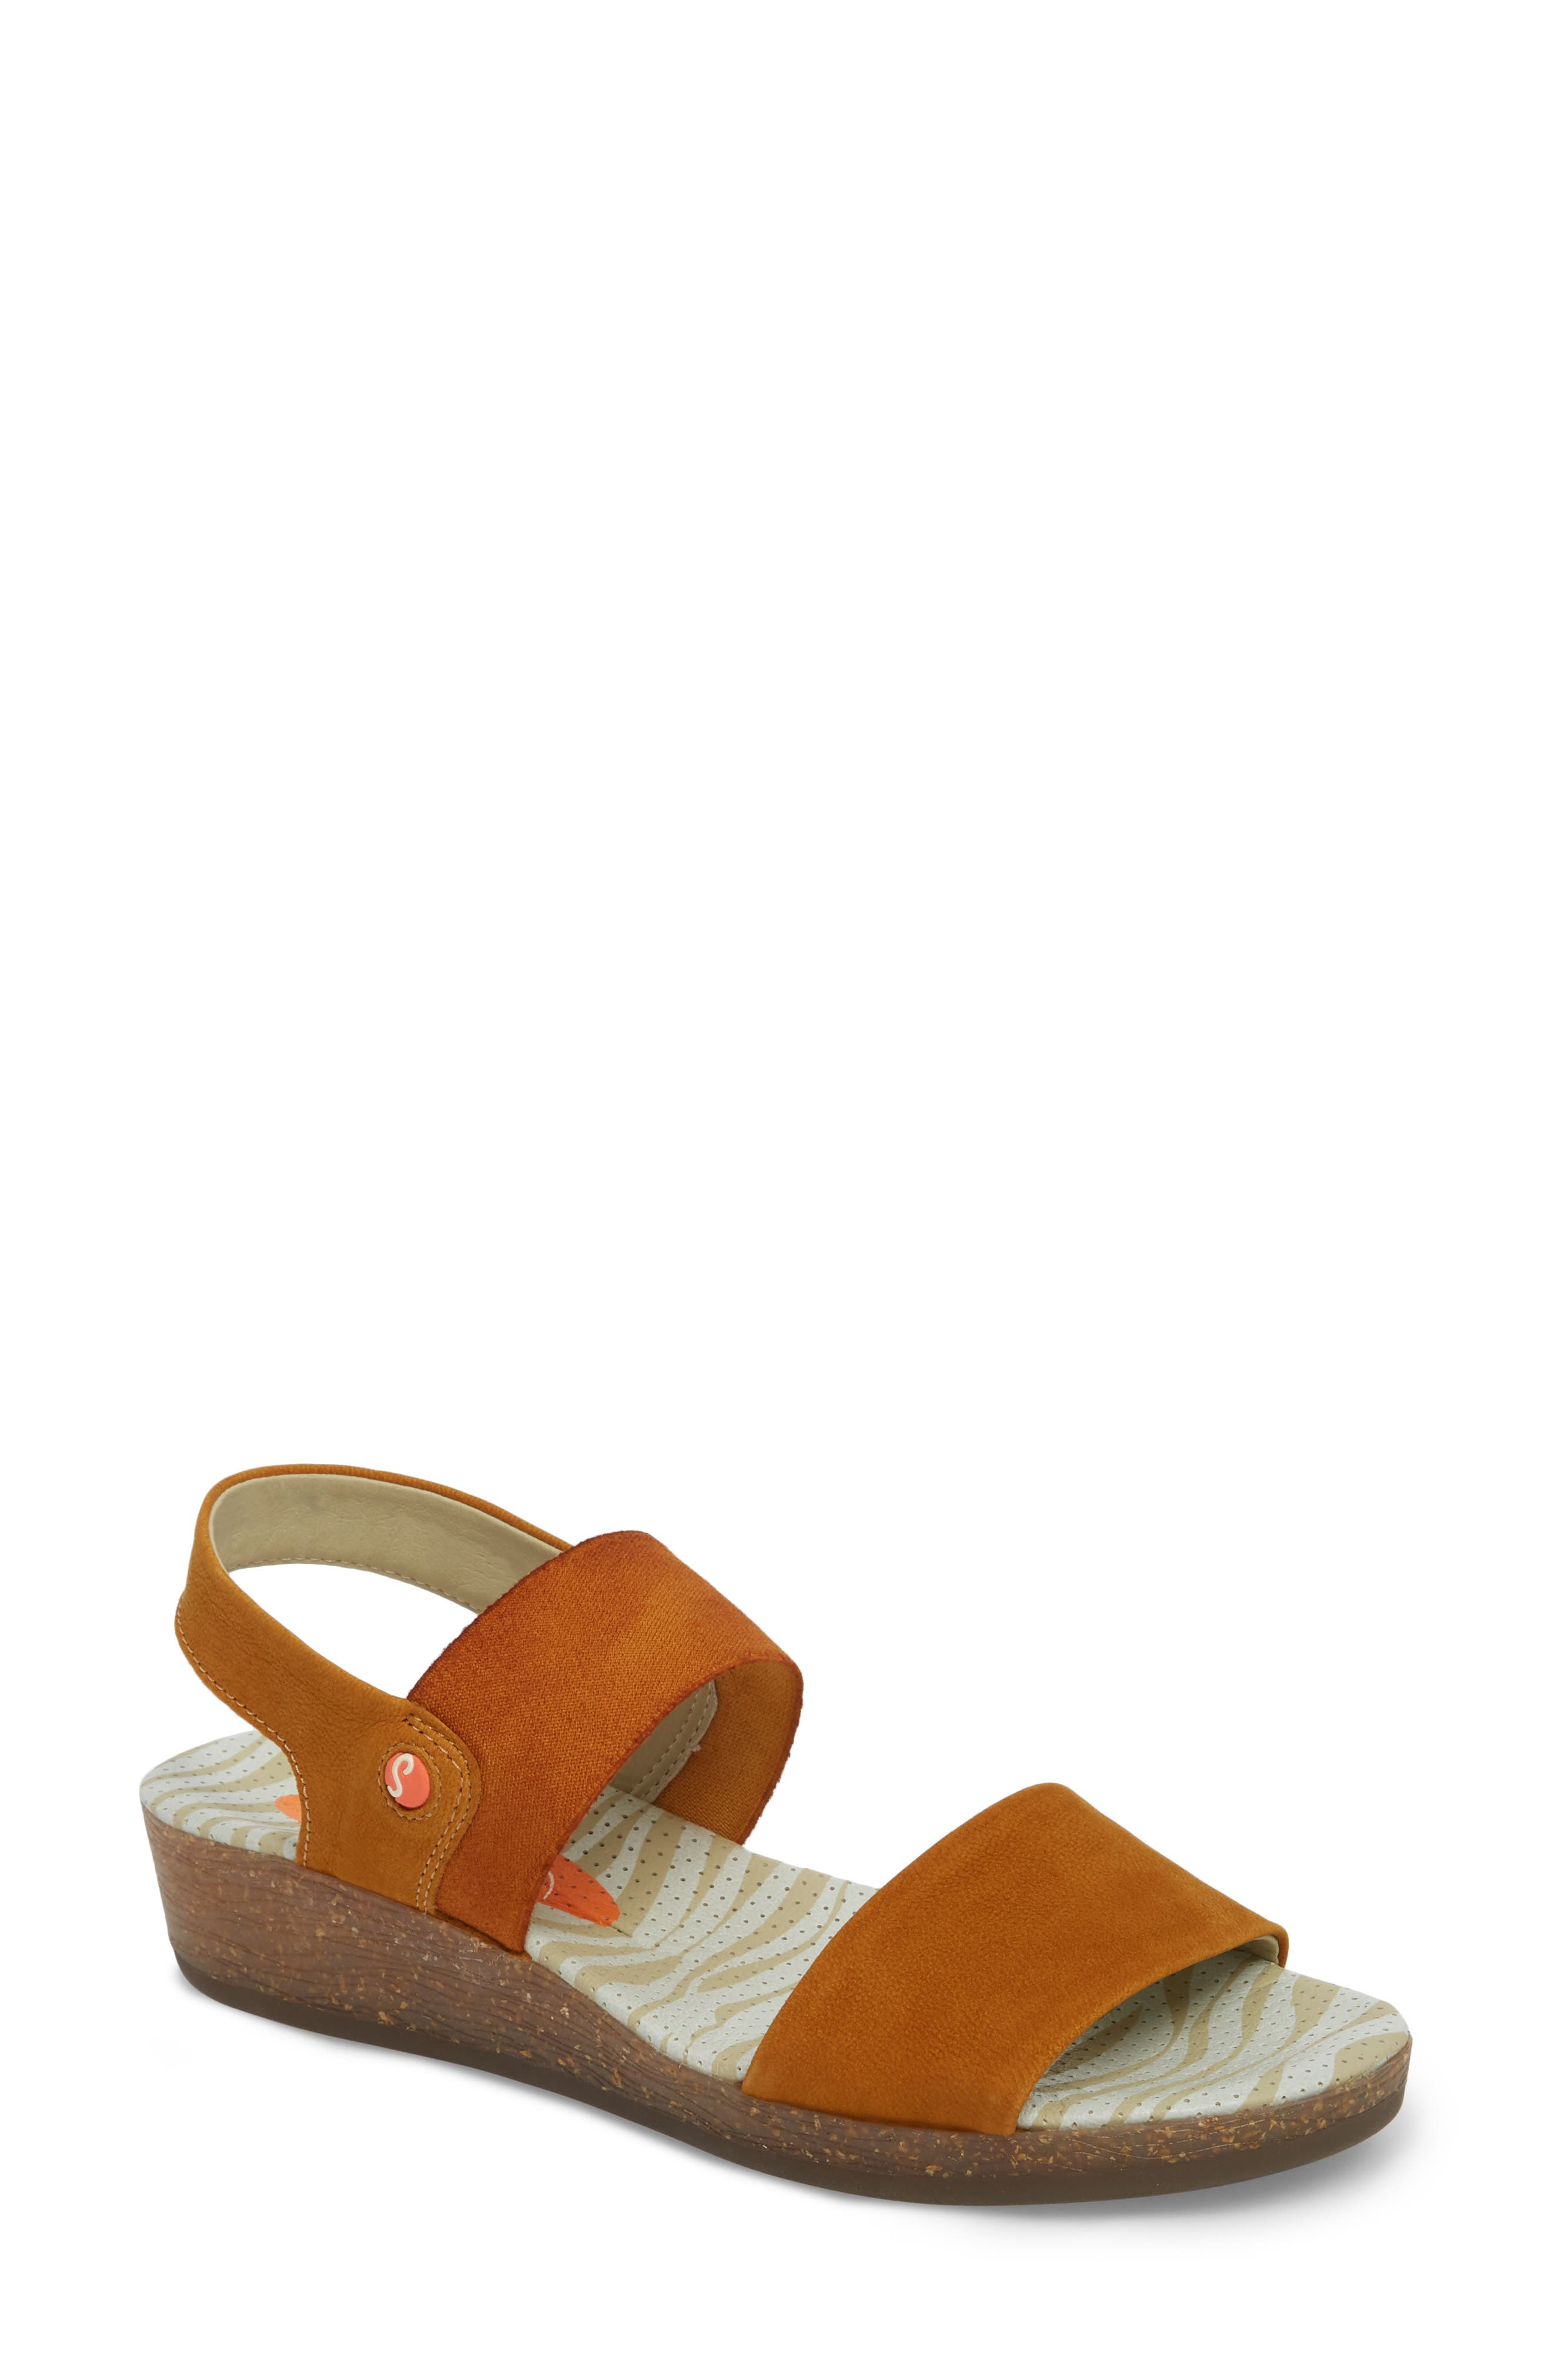 Softinos By Fly London Sandal, Yellow